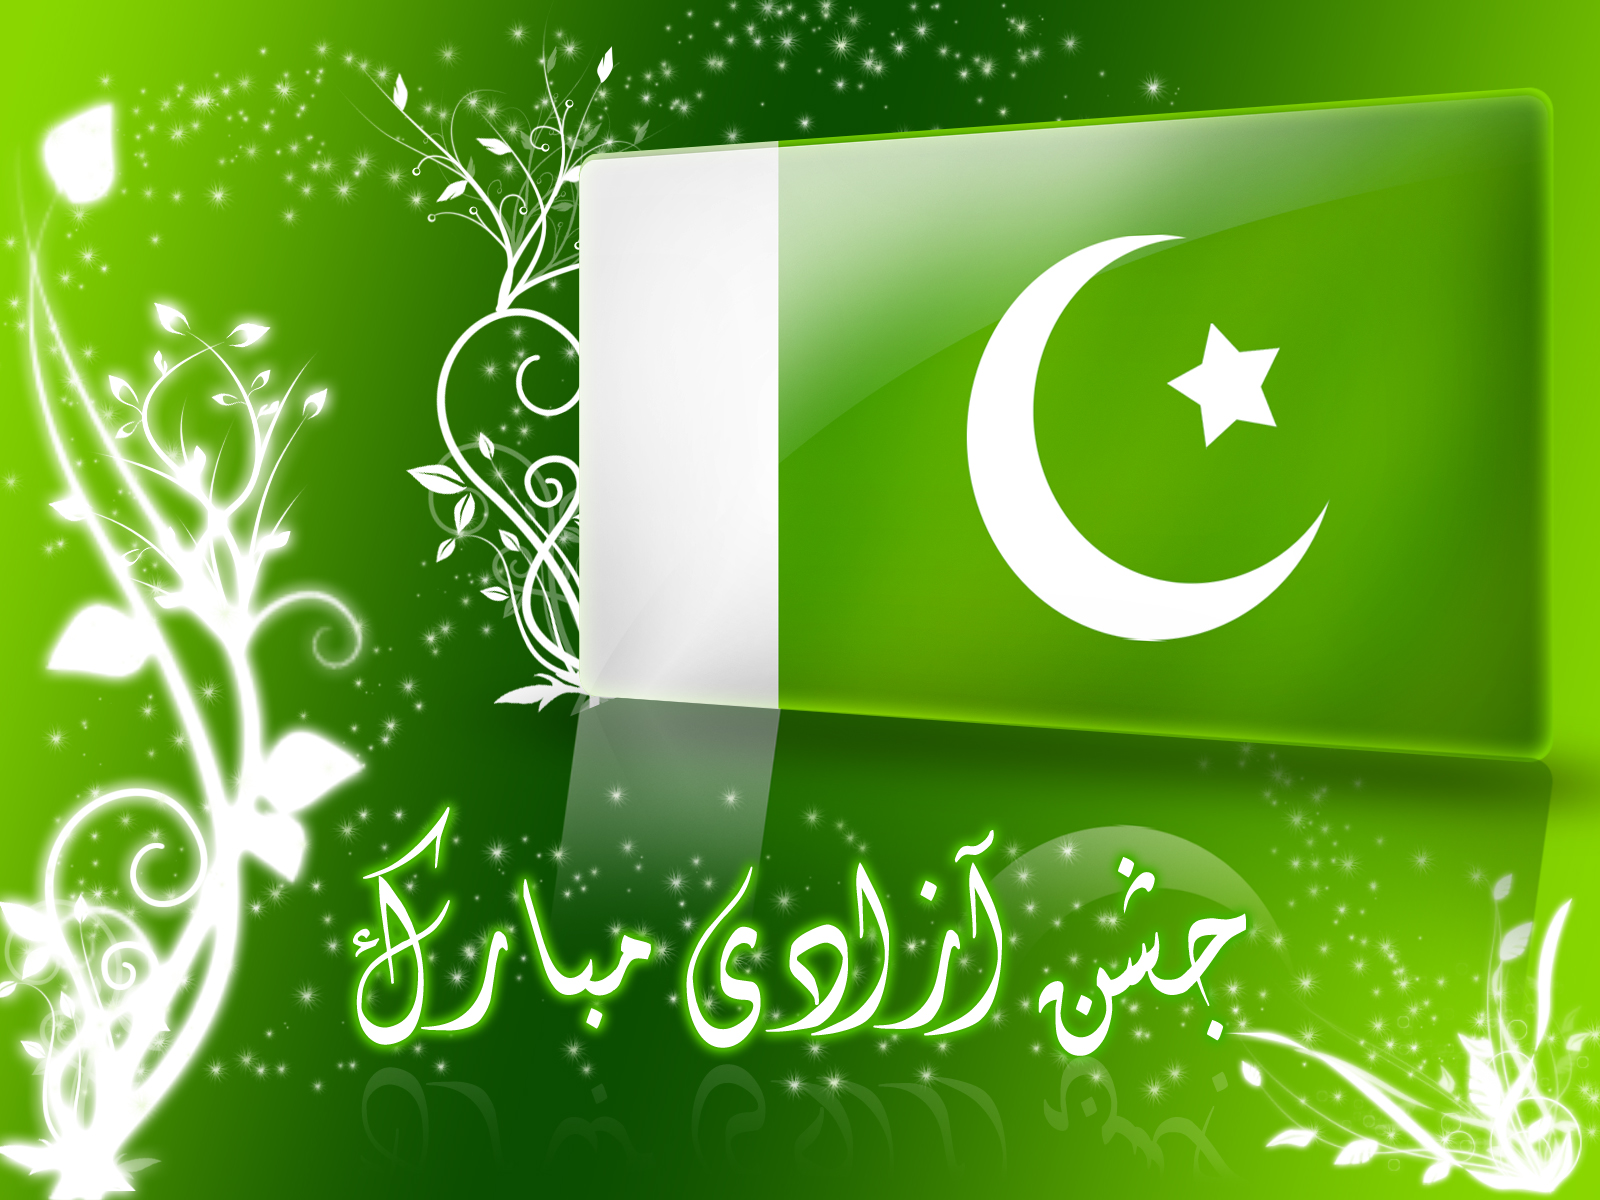 Wallpaper Girl Boss Ever Cool Wallpaper Happy Independence Day Pakistan Cool